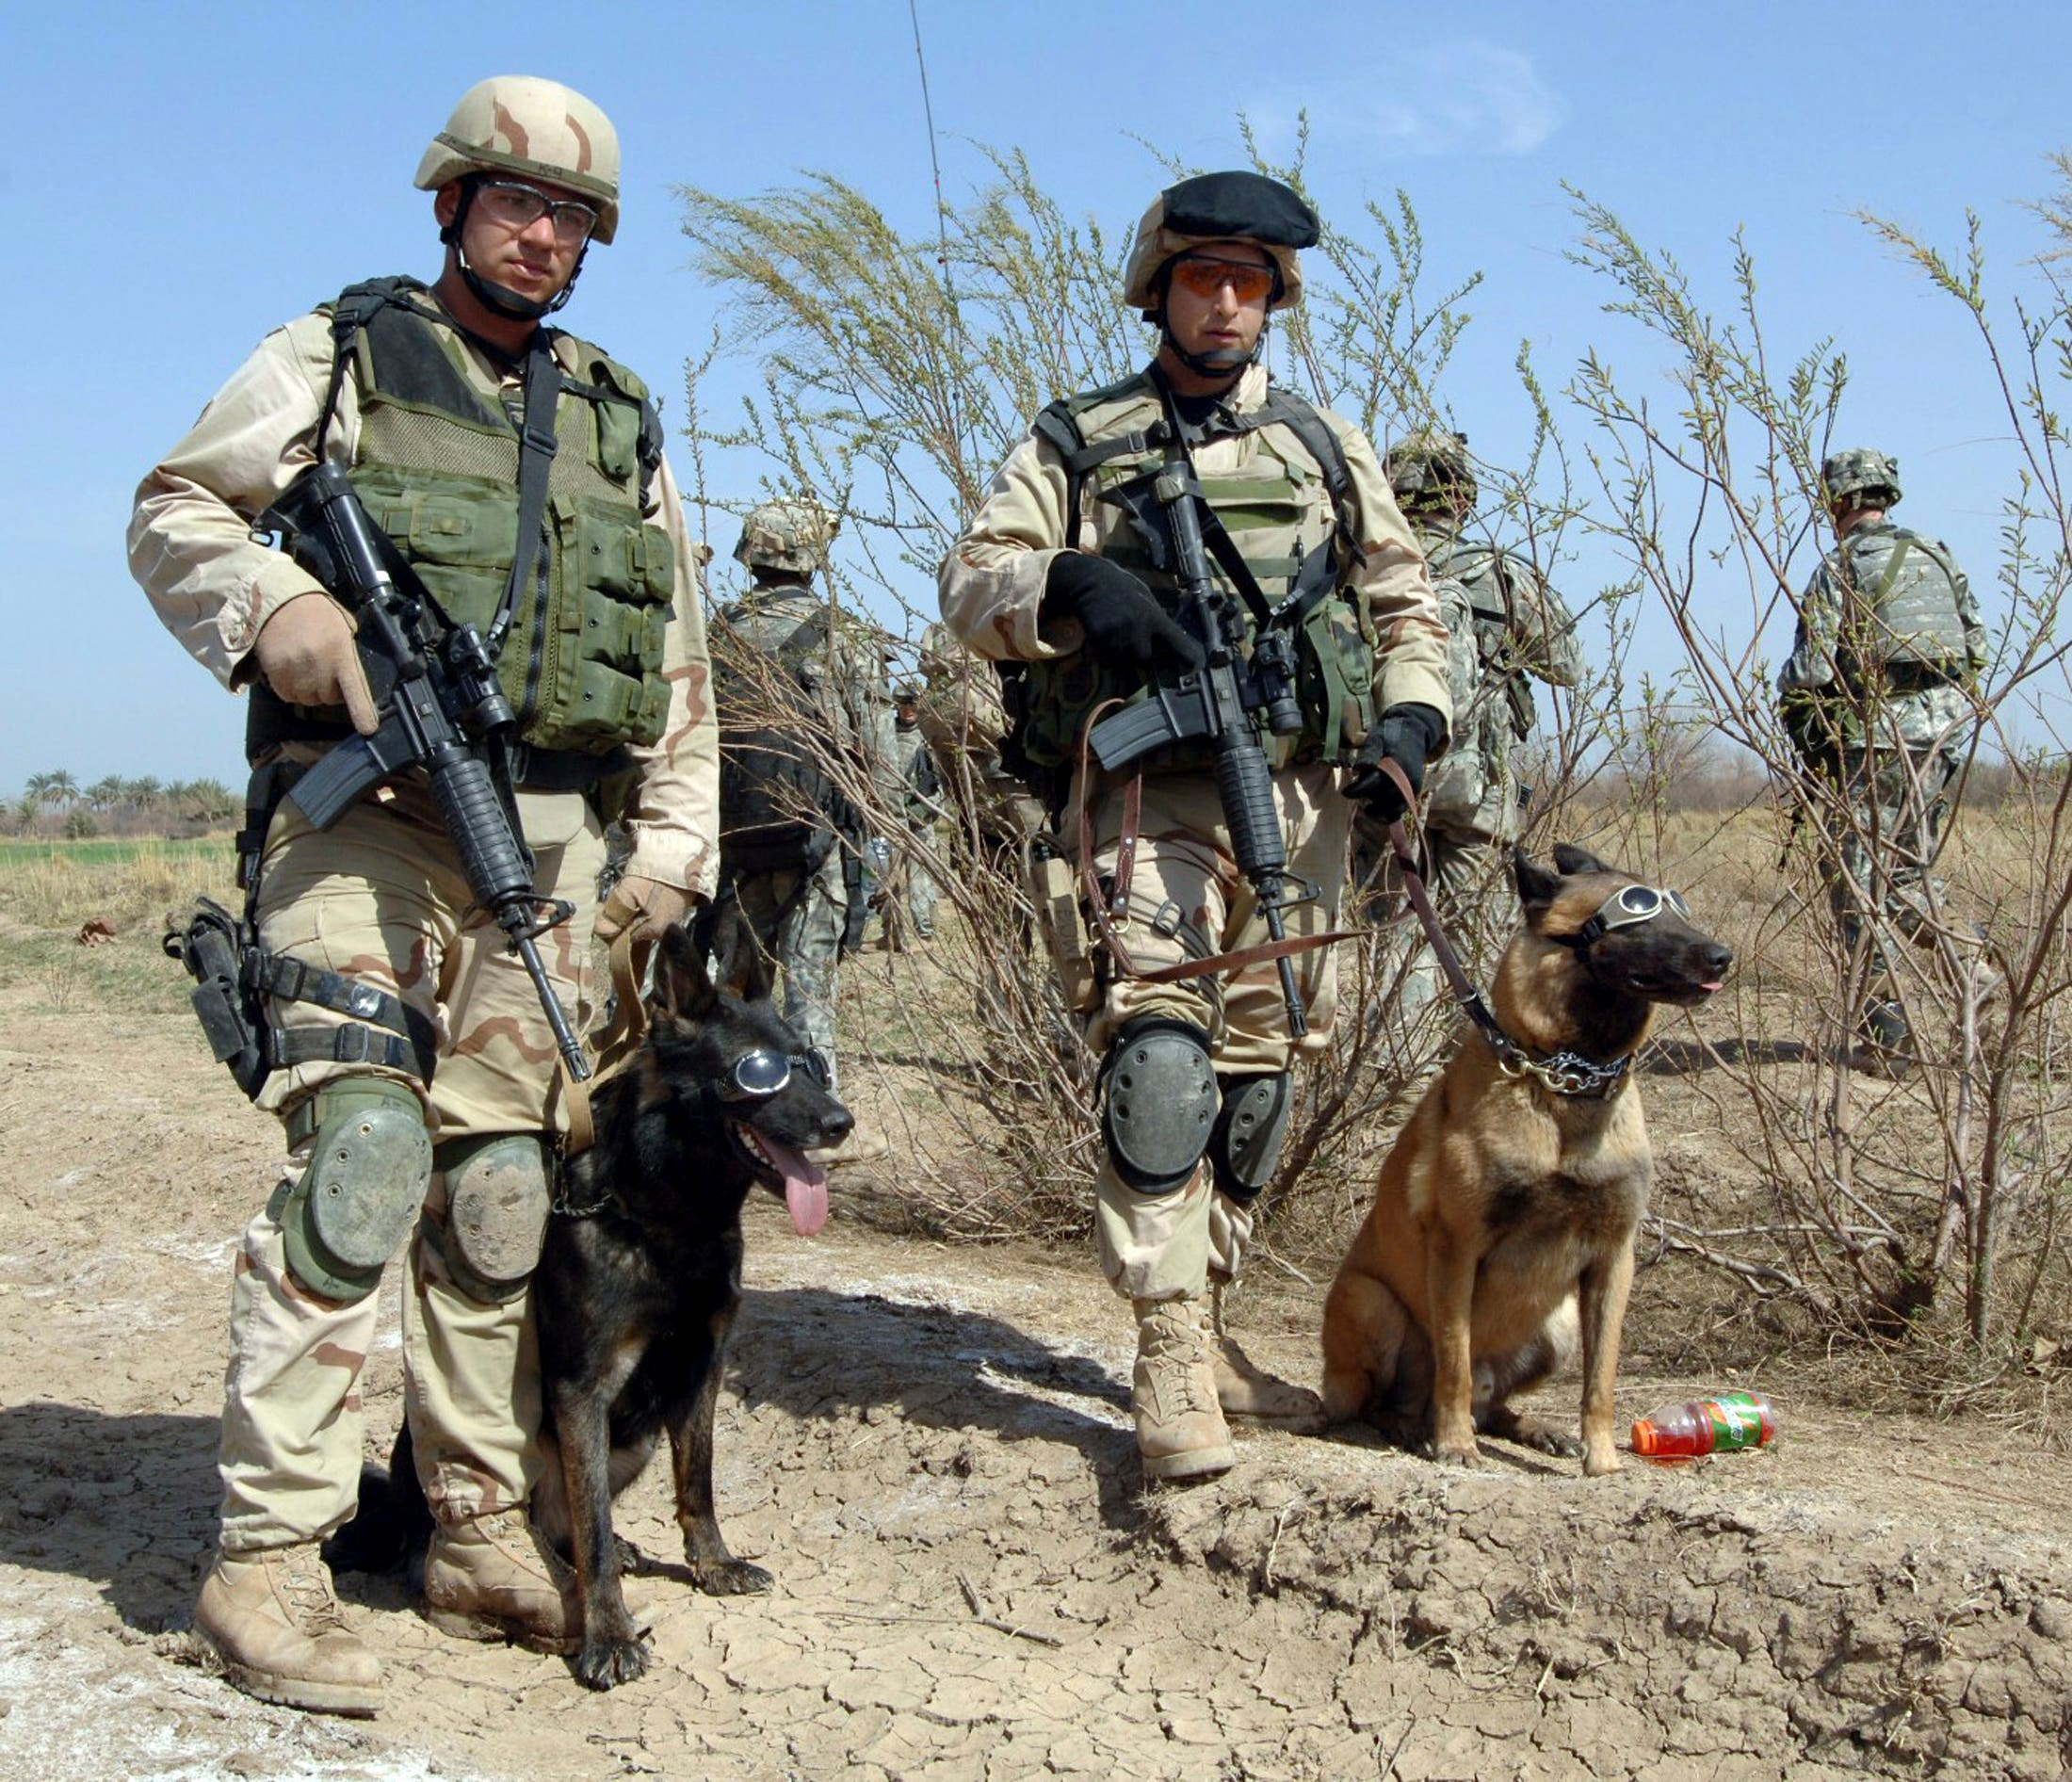 United States Air Force Tech Sgt. John Mascolo, and his dog Ajax (L) await a helicopter pickup with Staff Sgt. Manny Garcia, and his dog Jimmy, outside Forward Operating Base Normandy in Iraq in this undated handout image obtained by Reuters December 2, 2011. (File photo: Reuters)